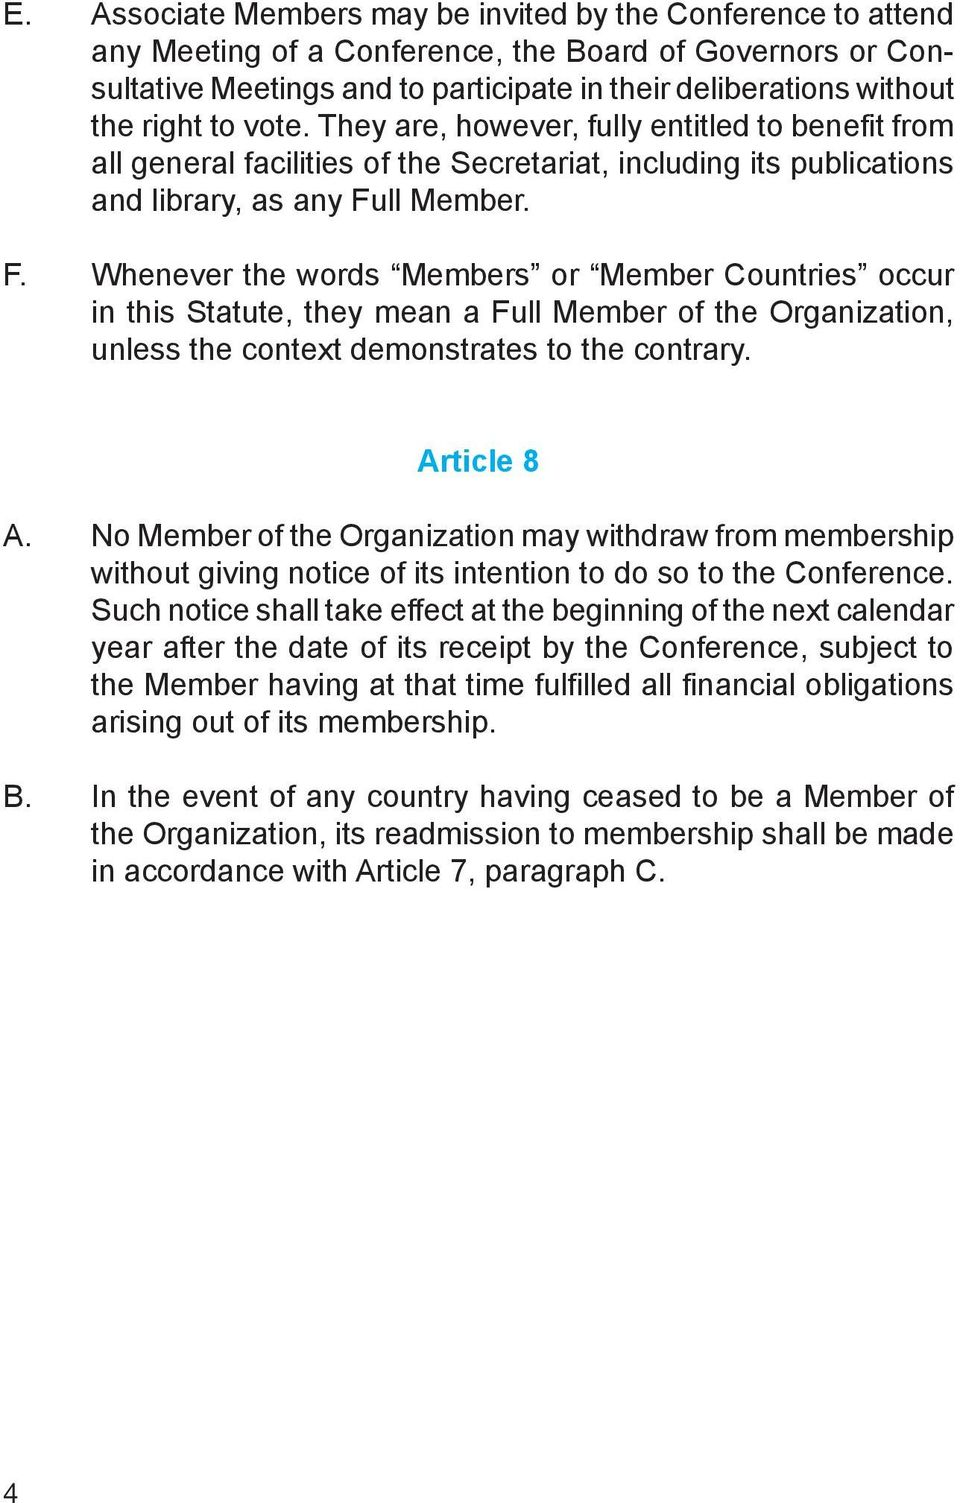 ll Member. F. Whenever the words Members or Member Countries occur in this Statute, they mean a Full Member of the Organization, unless the context demonstrates to the contrary. Article 8 A.